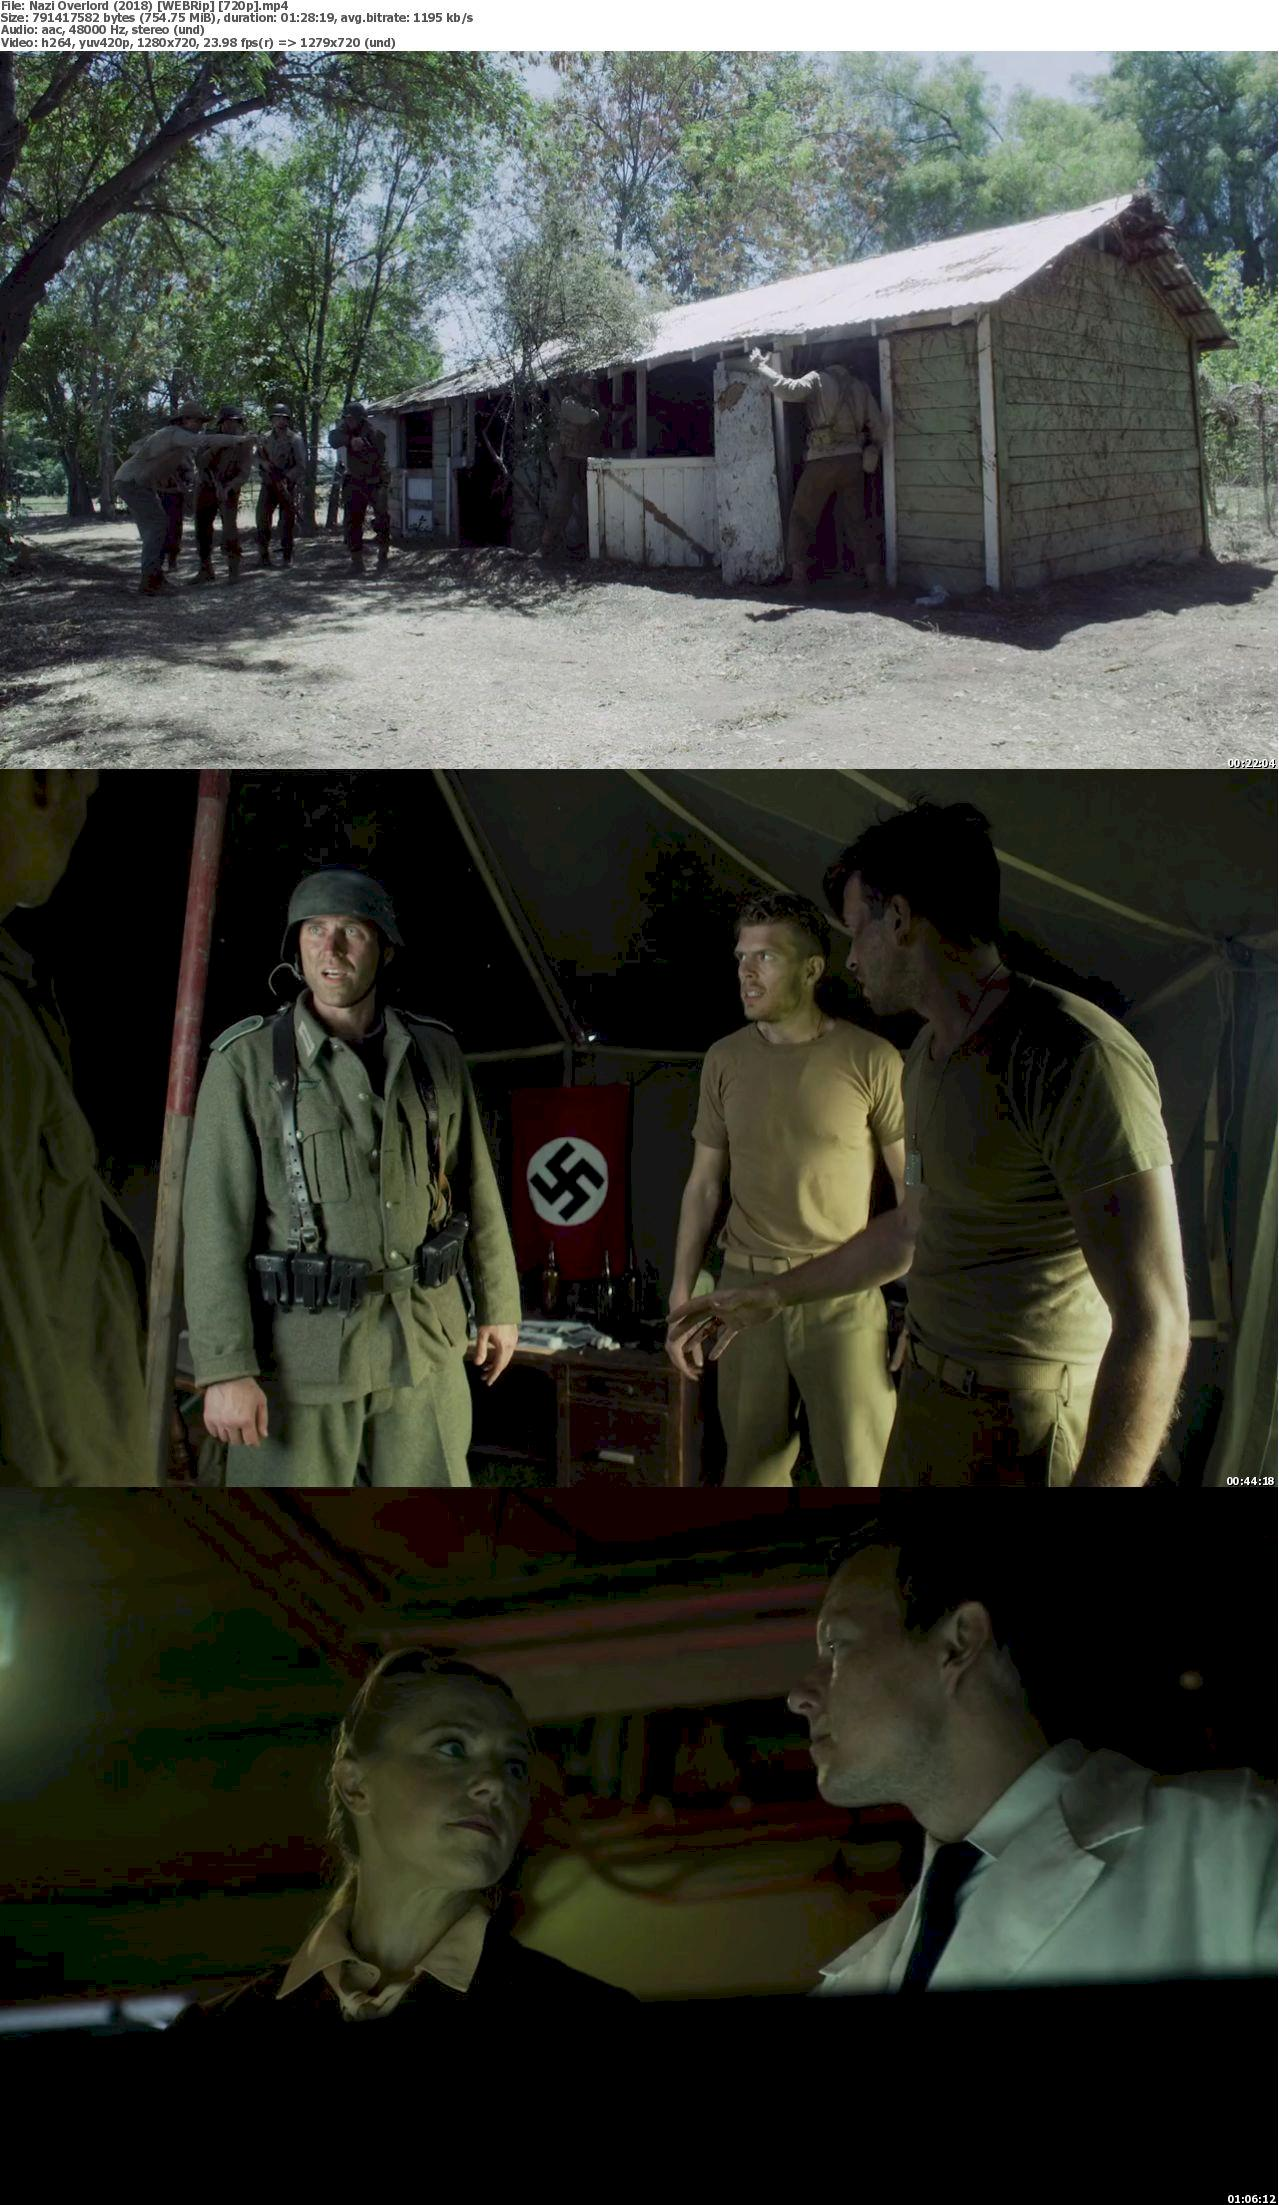 Nazi Overlord (2018) [720p] WEB-Rip Free Movies Watch Online  & Download 720p Screenshot